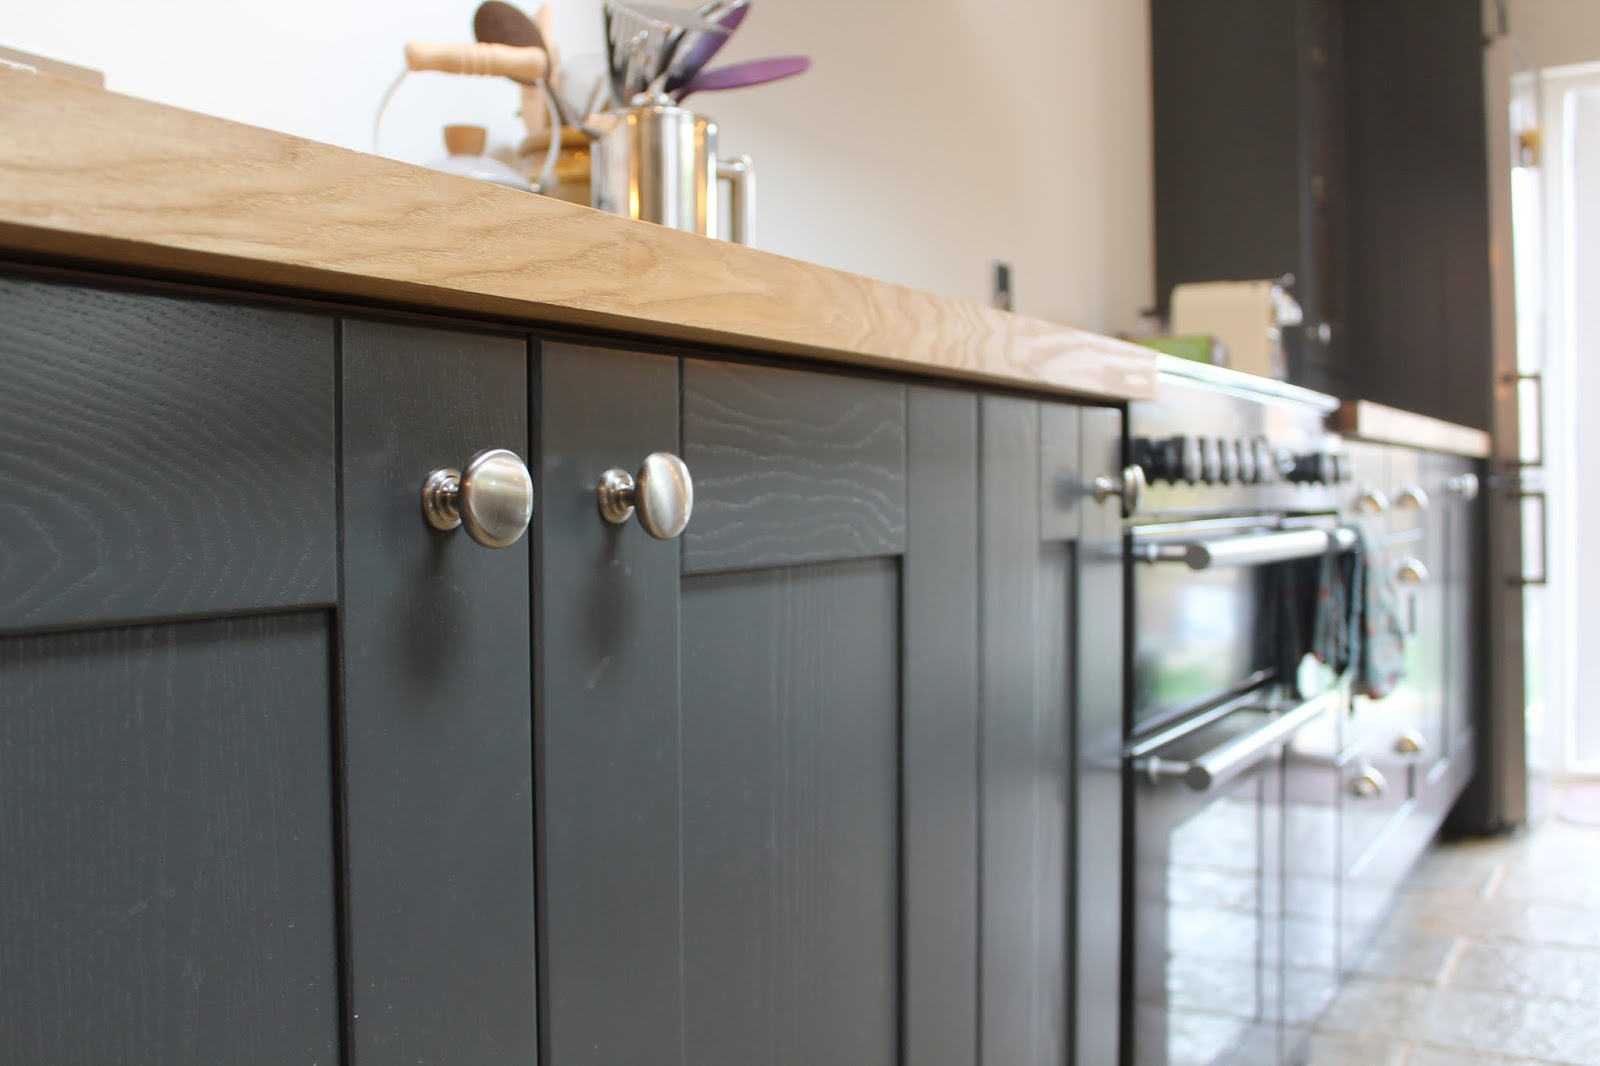 Cheap and Easy DIY Kitchen Projects While You Isolate